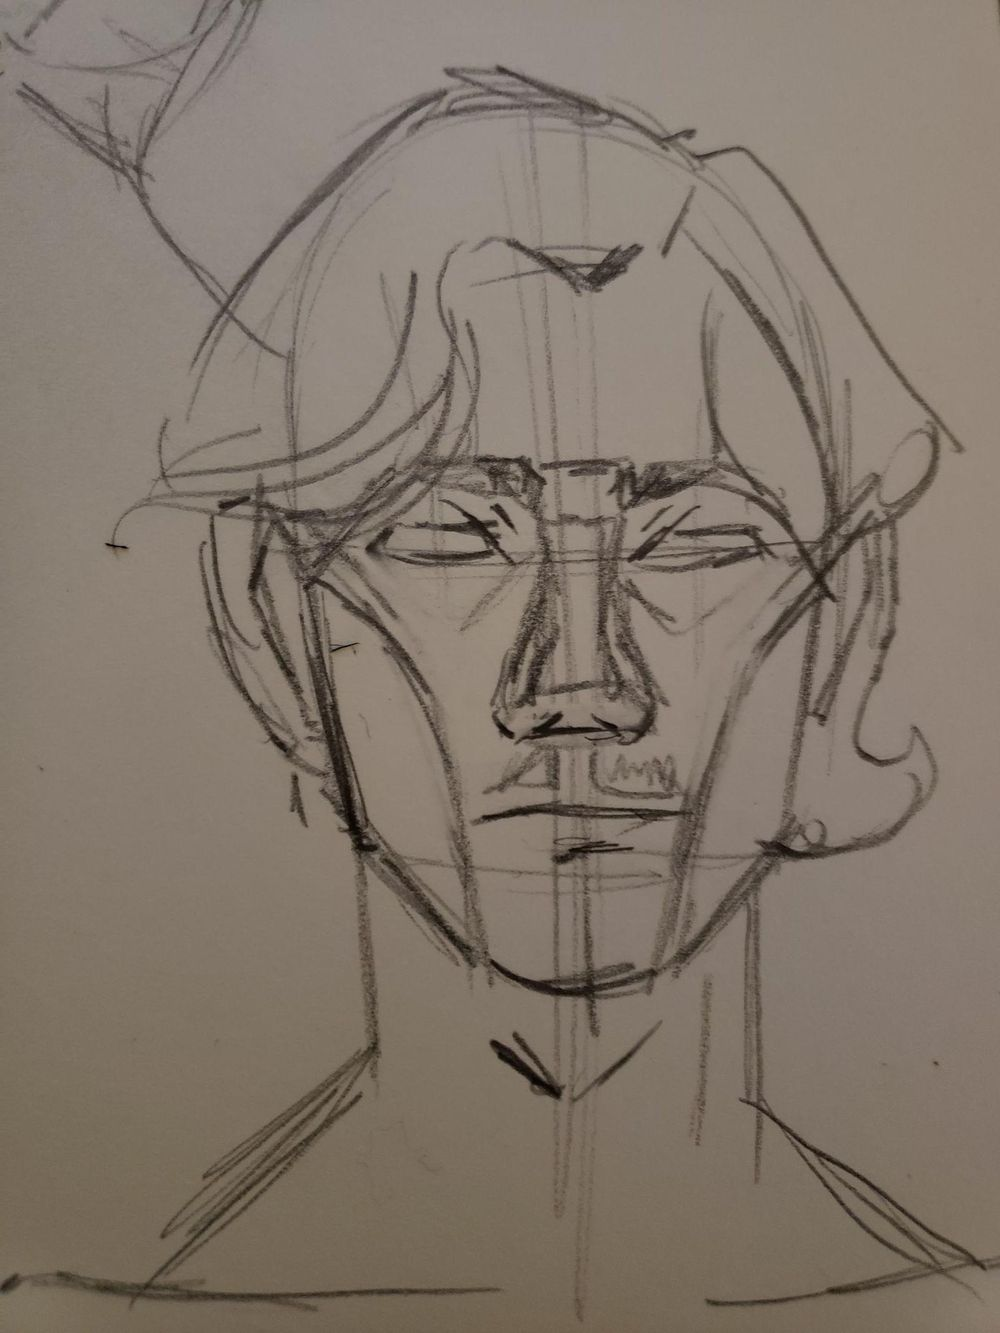 Face drawing - image 1 - student project